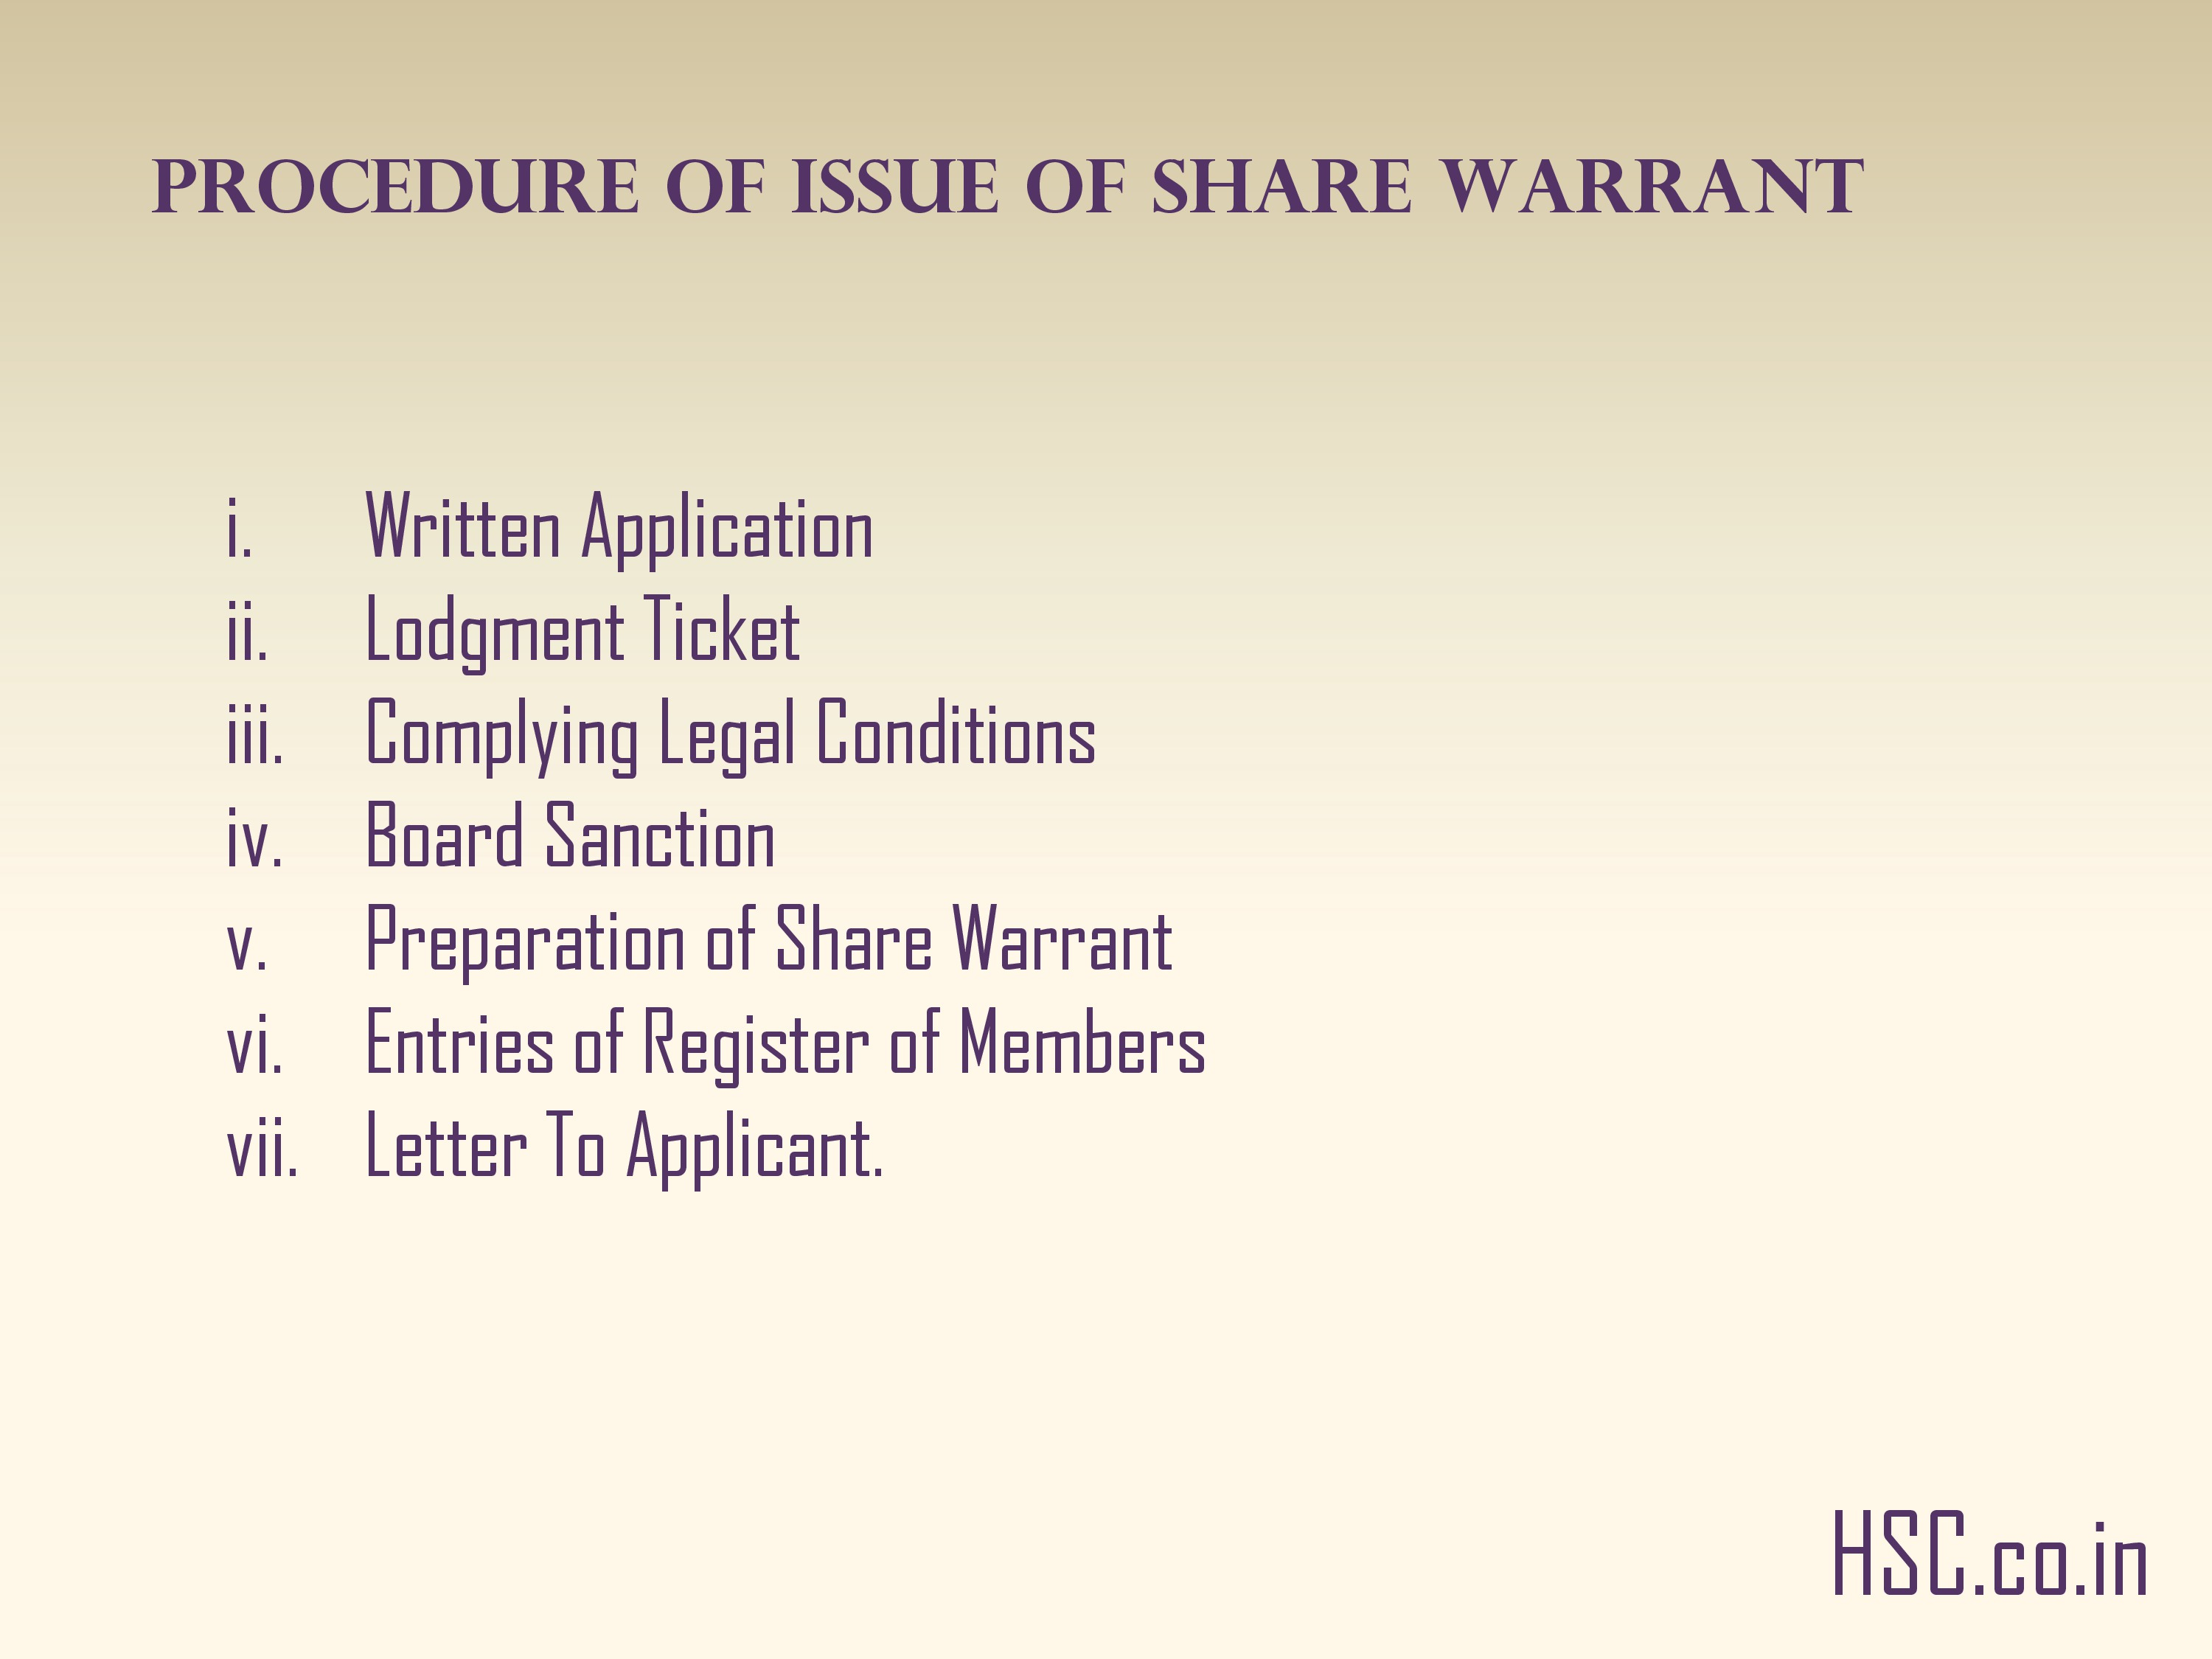 Procedure of issue of share warrant